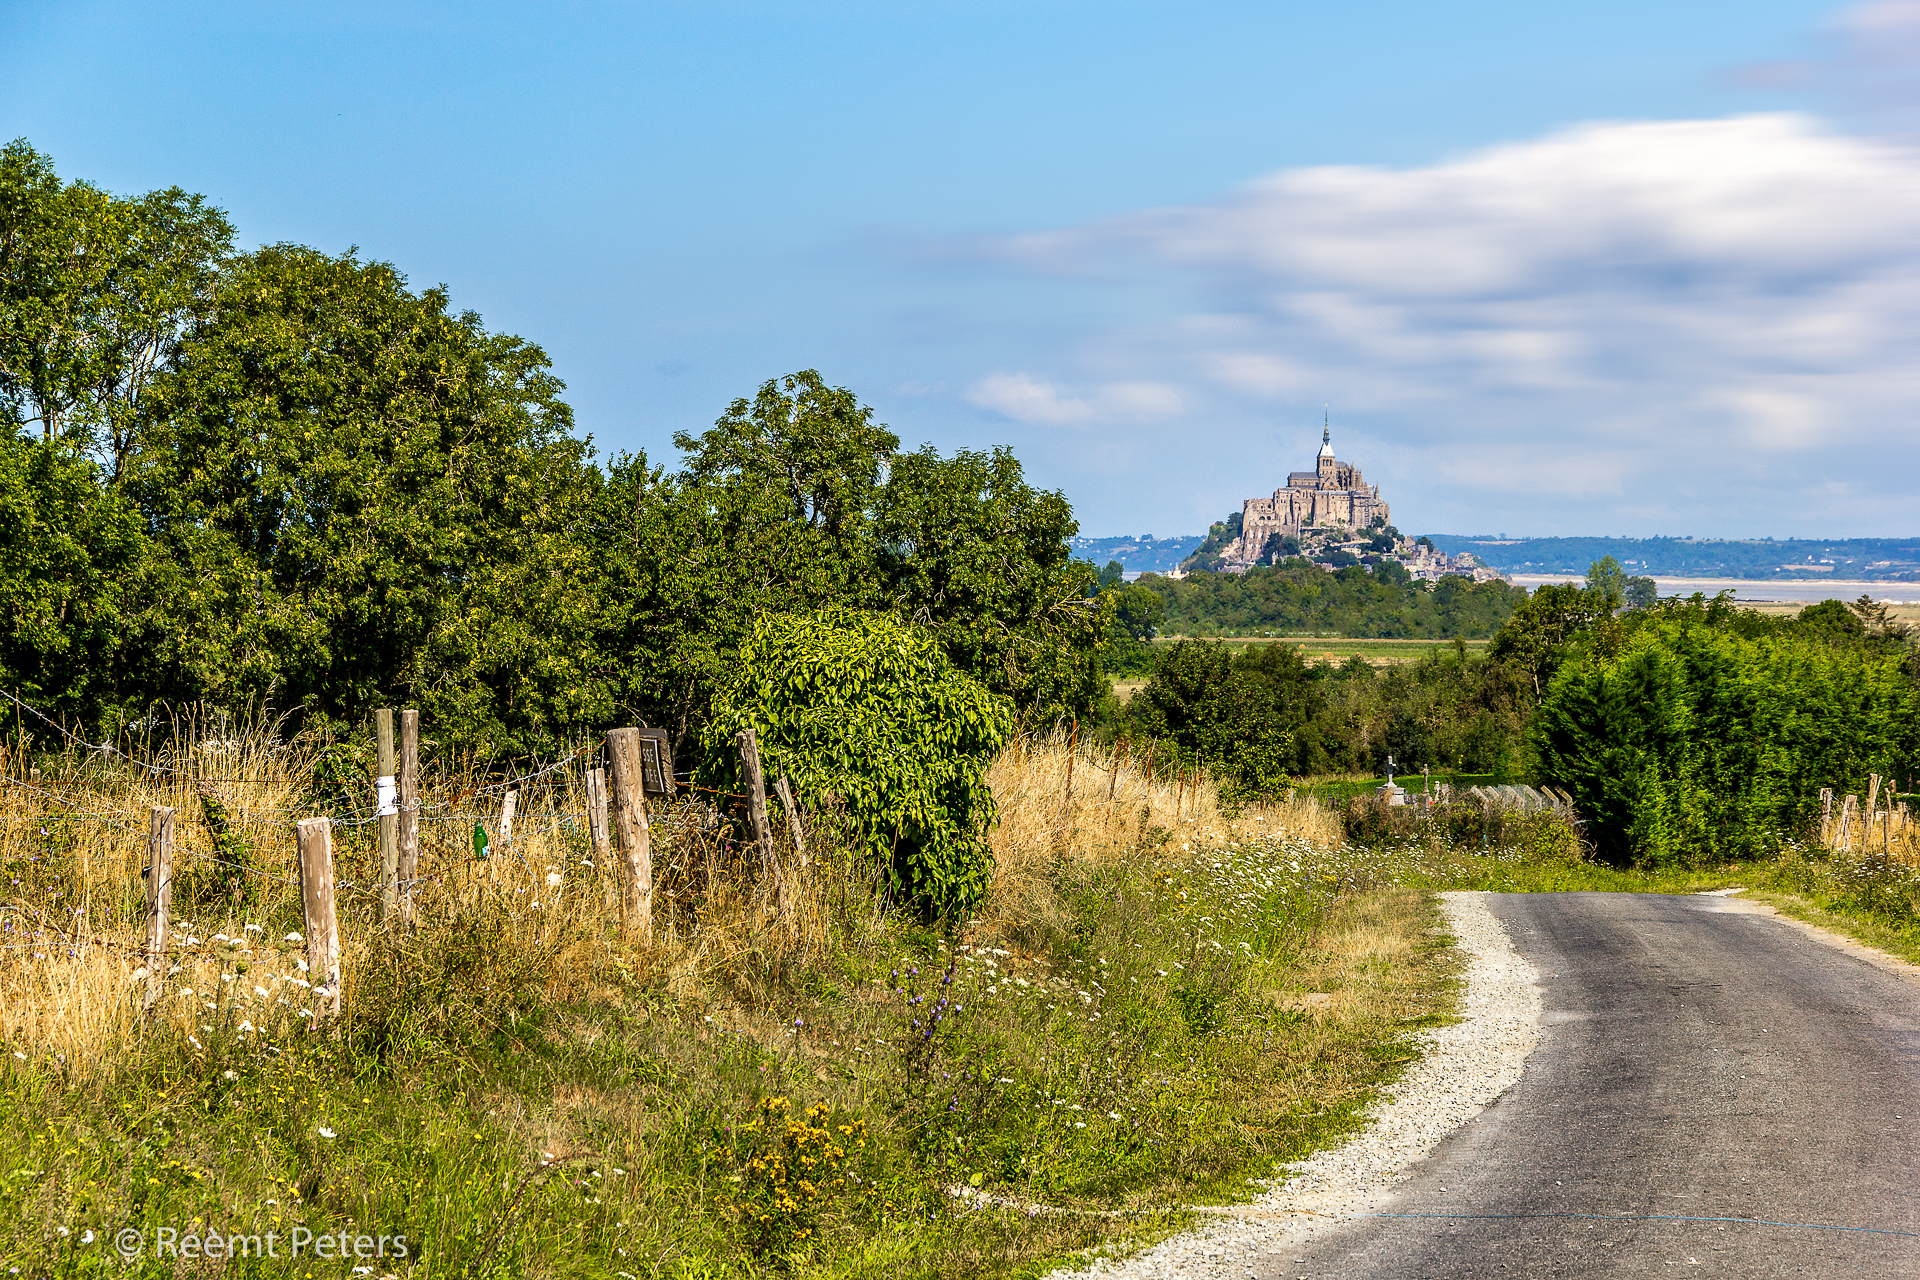 The road to Saint-Michel, France